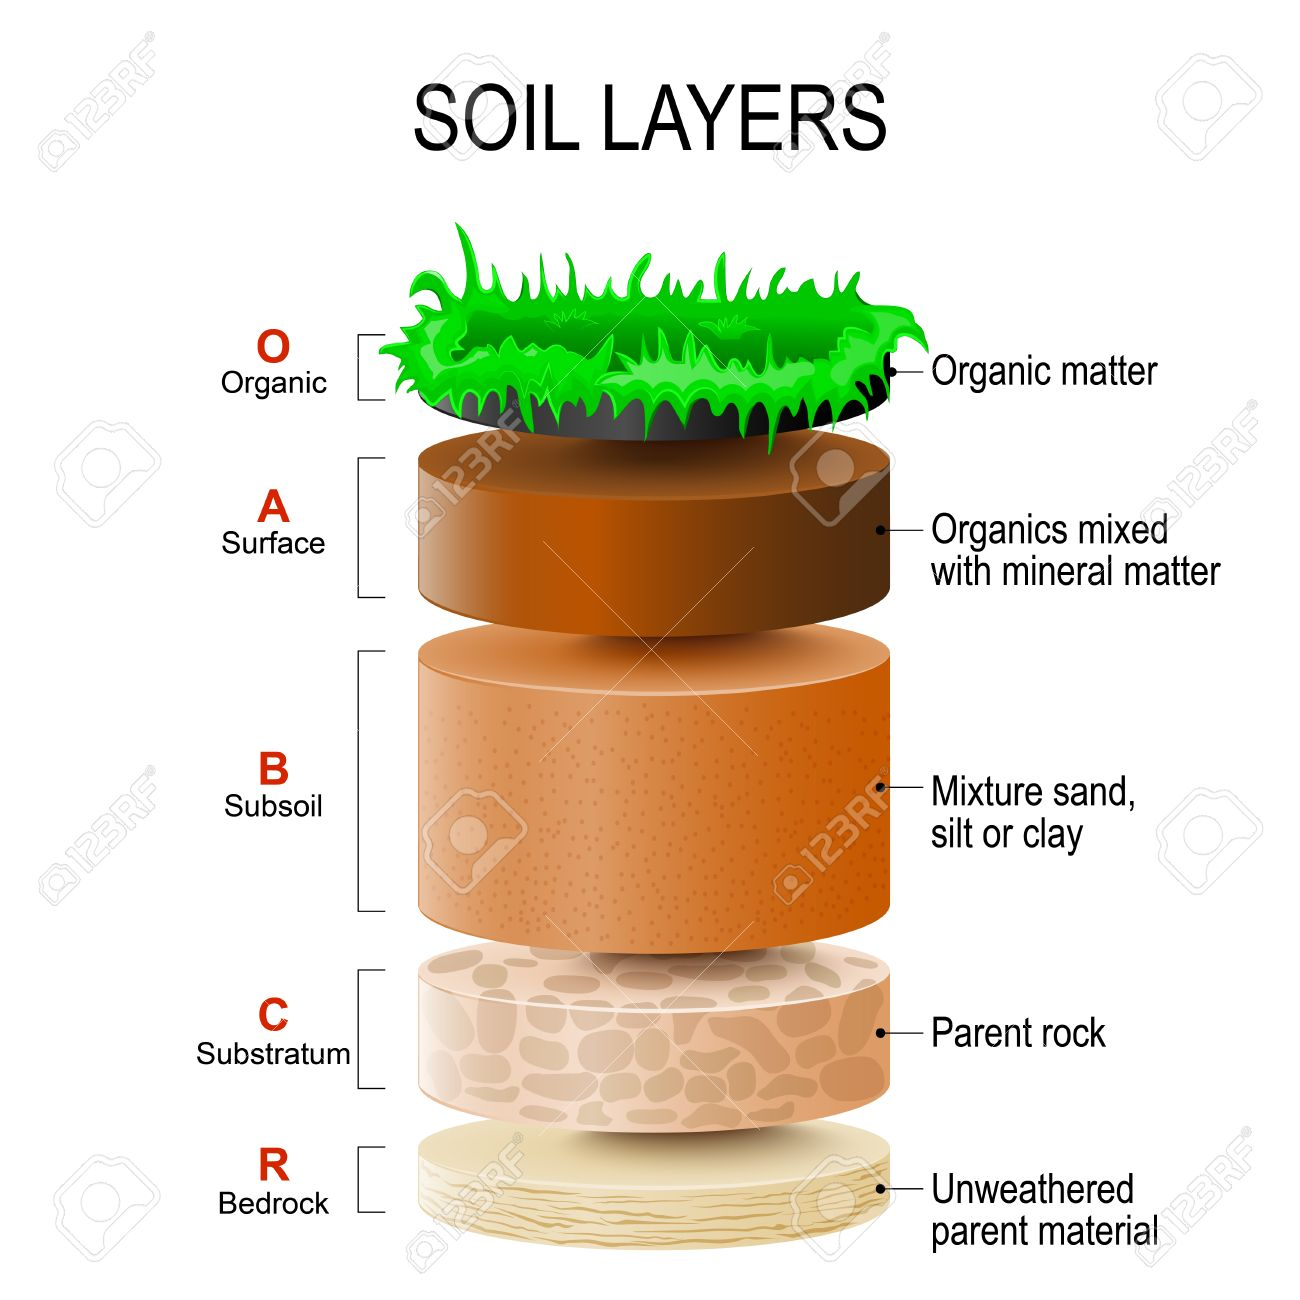 Soil layers soil formation and soil horizons soil is a mixture soil layers soil formation and soil horizons soil is a mixture of plant residue pooptronica Images